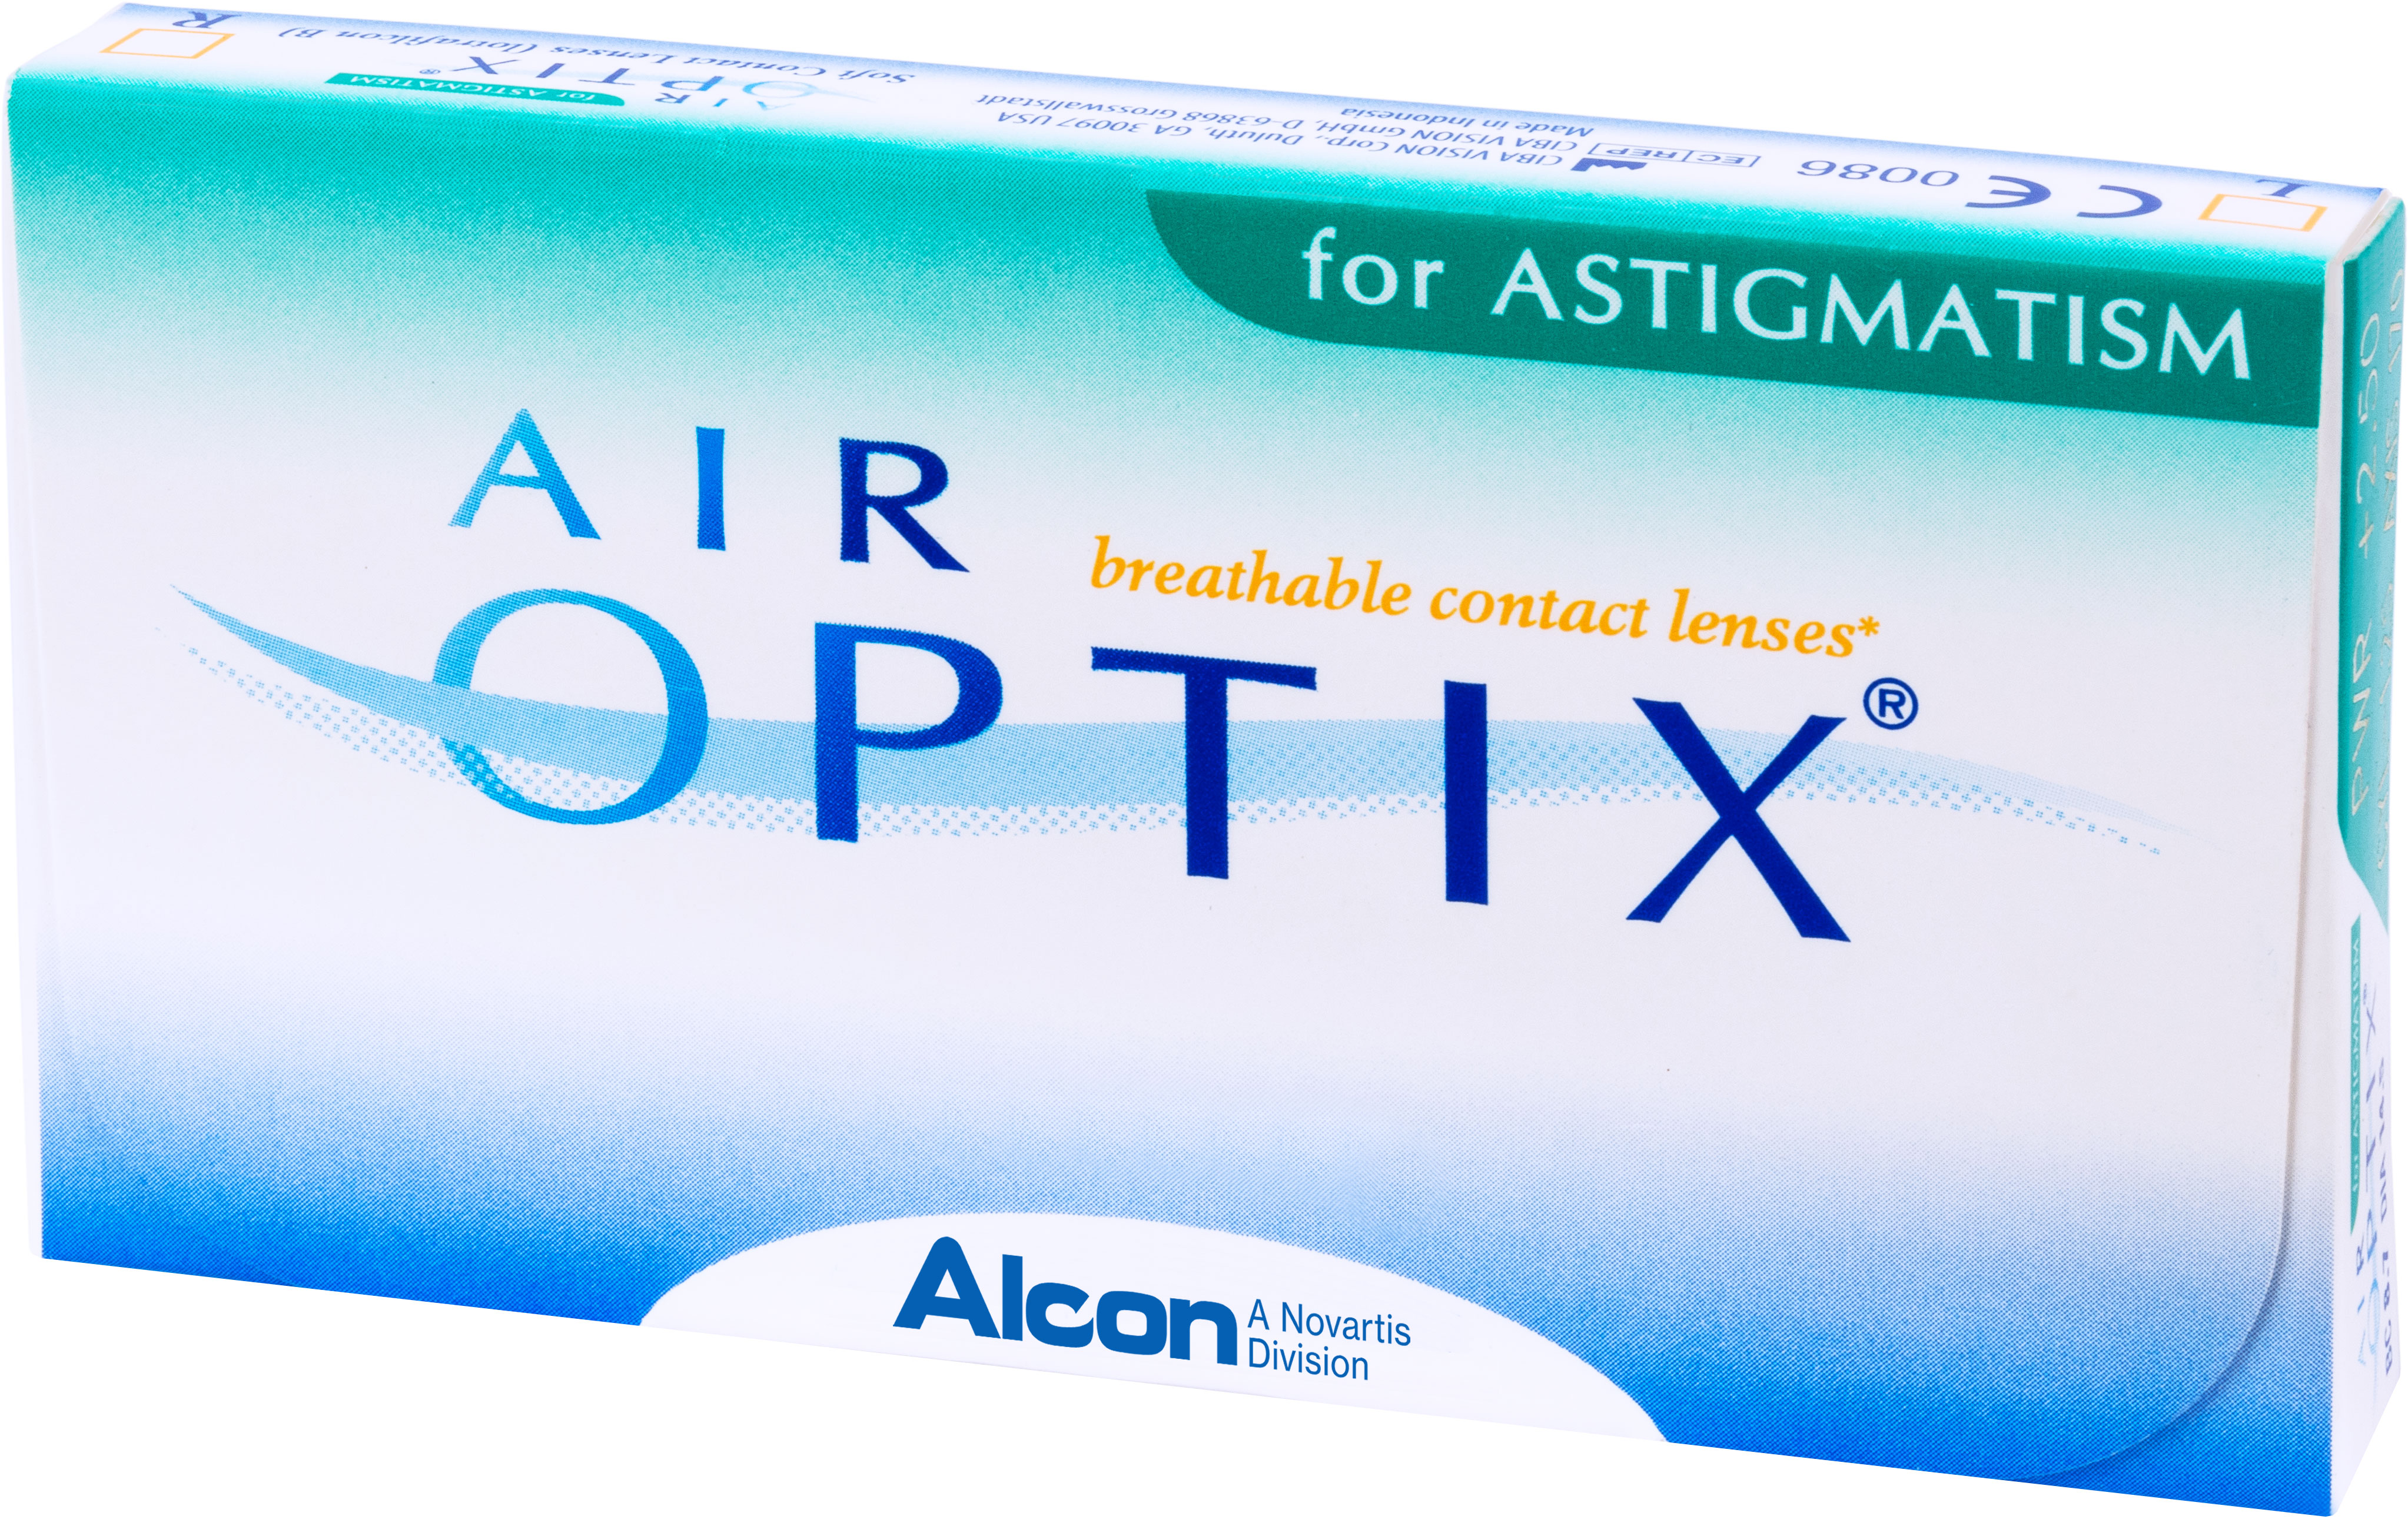 Аlcon контактные линзы Air Optix for Astigmatism 3pk /BC 8.7/DIA14.5/PWR -1.00/CYL -1.25/AXIS 160100000860with Hydraclear